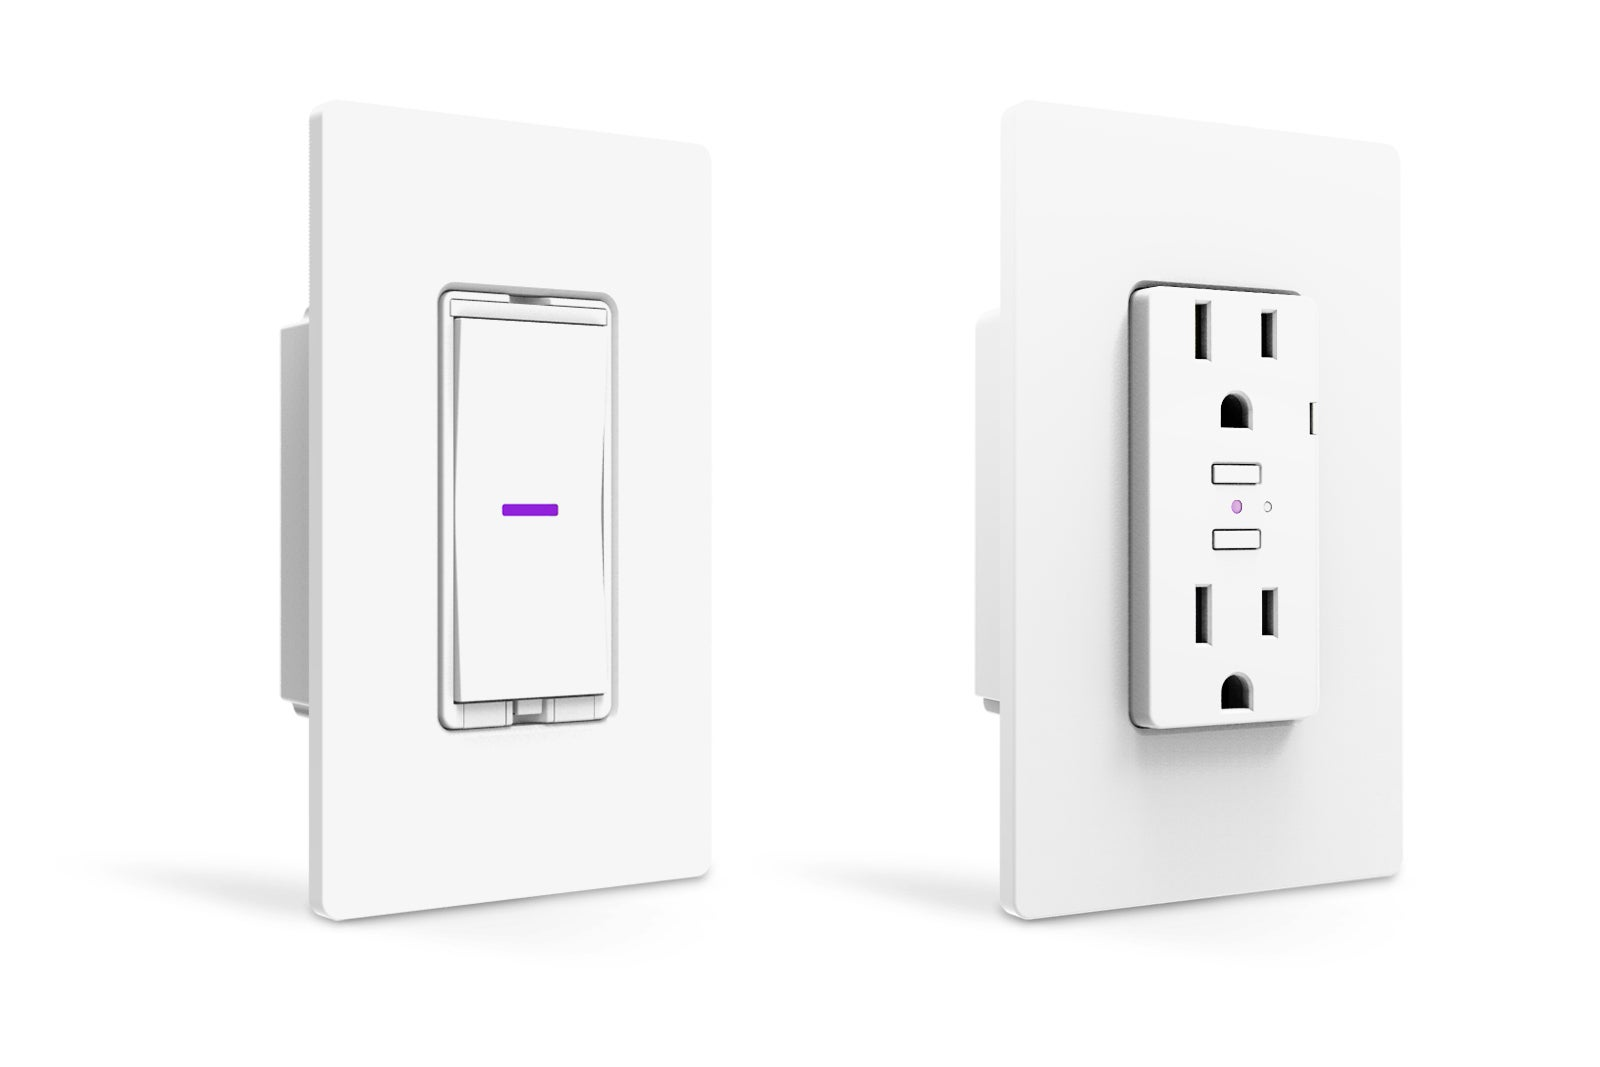 Idevices Dimmer Switch And Wall Outlet Review Smart Home Controlno Used To Operate Two Lights With The Power Feed Via Hub Required Techhive